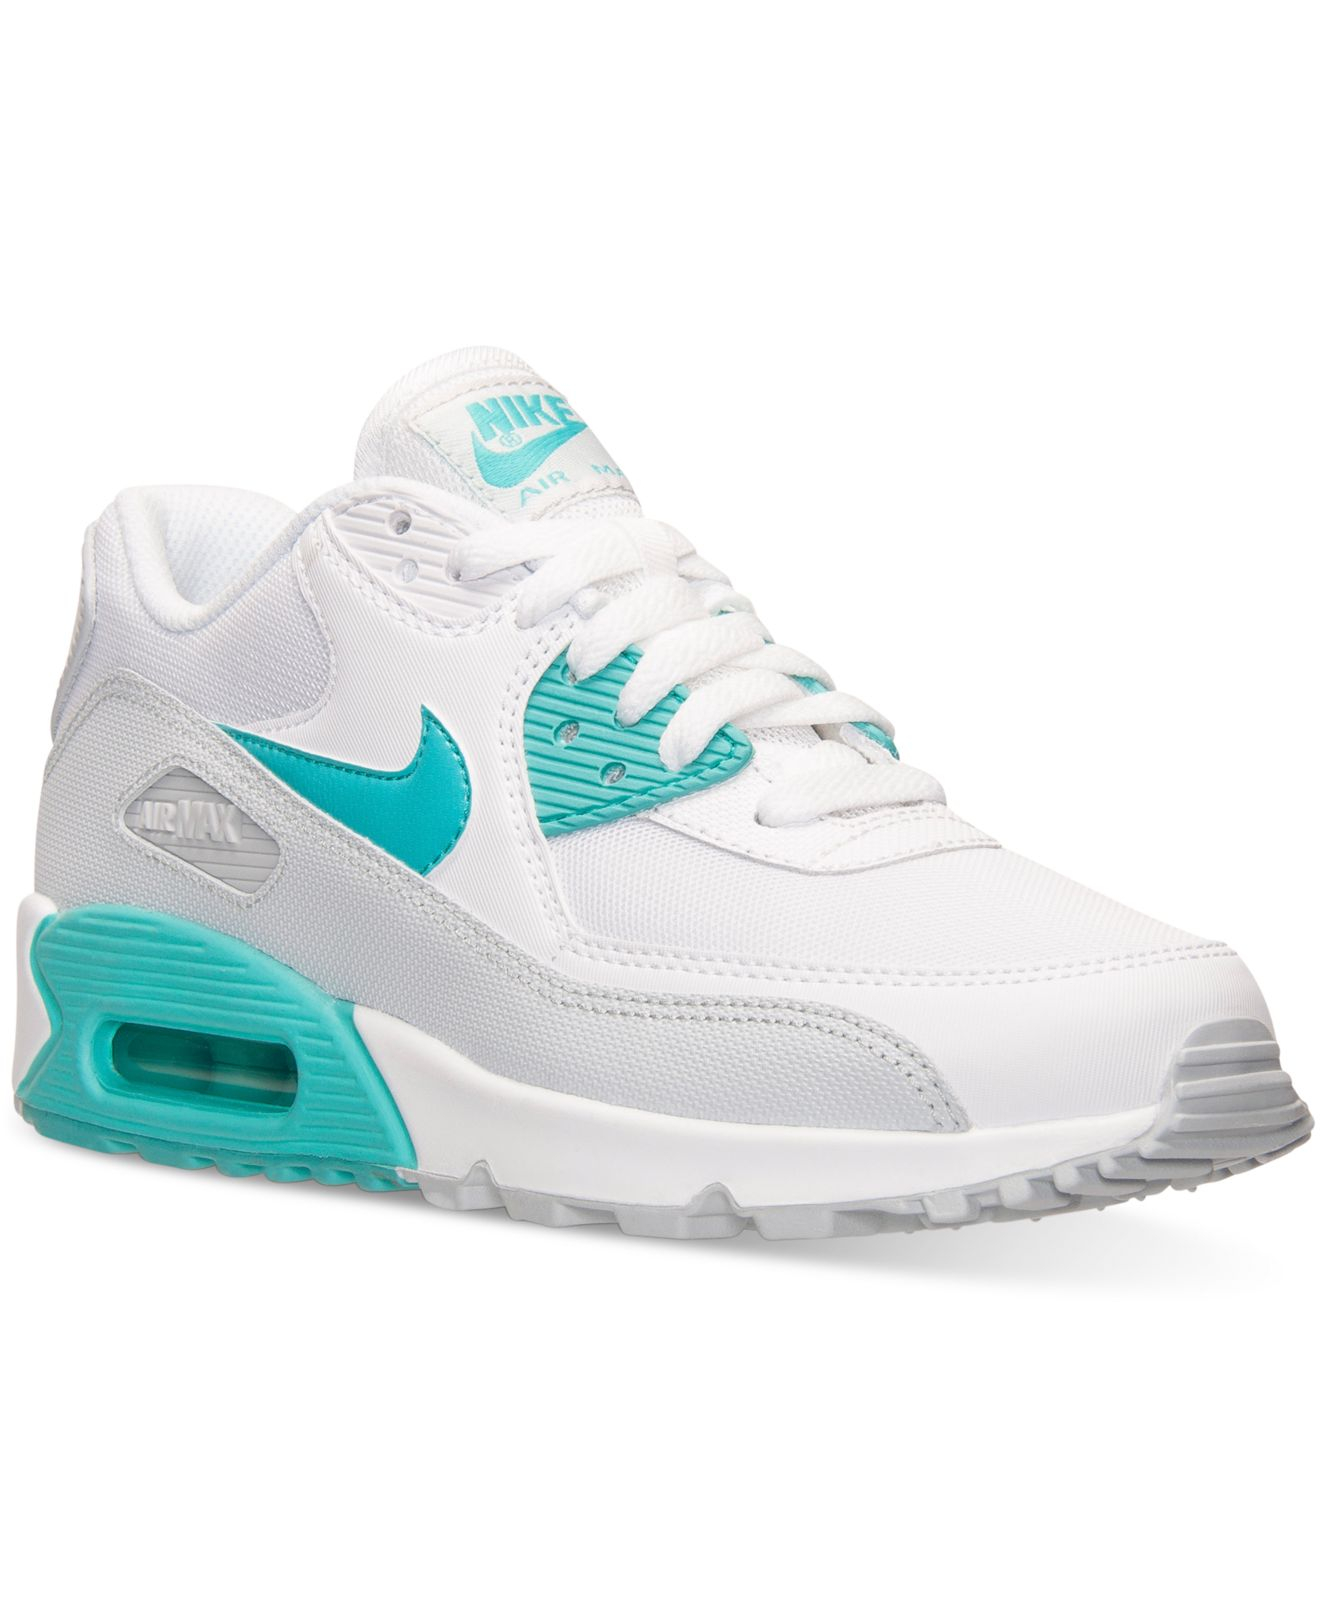 Lyst - Nike Women s Air Max 90 Essential Running Sneakers From Finish Line  in White 15a6c1b8cd